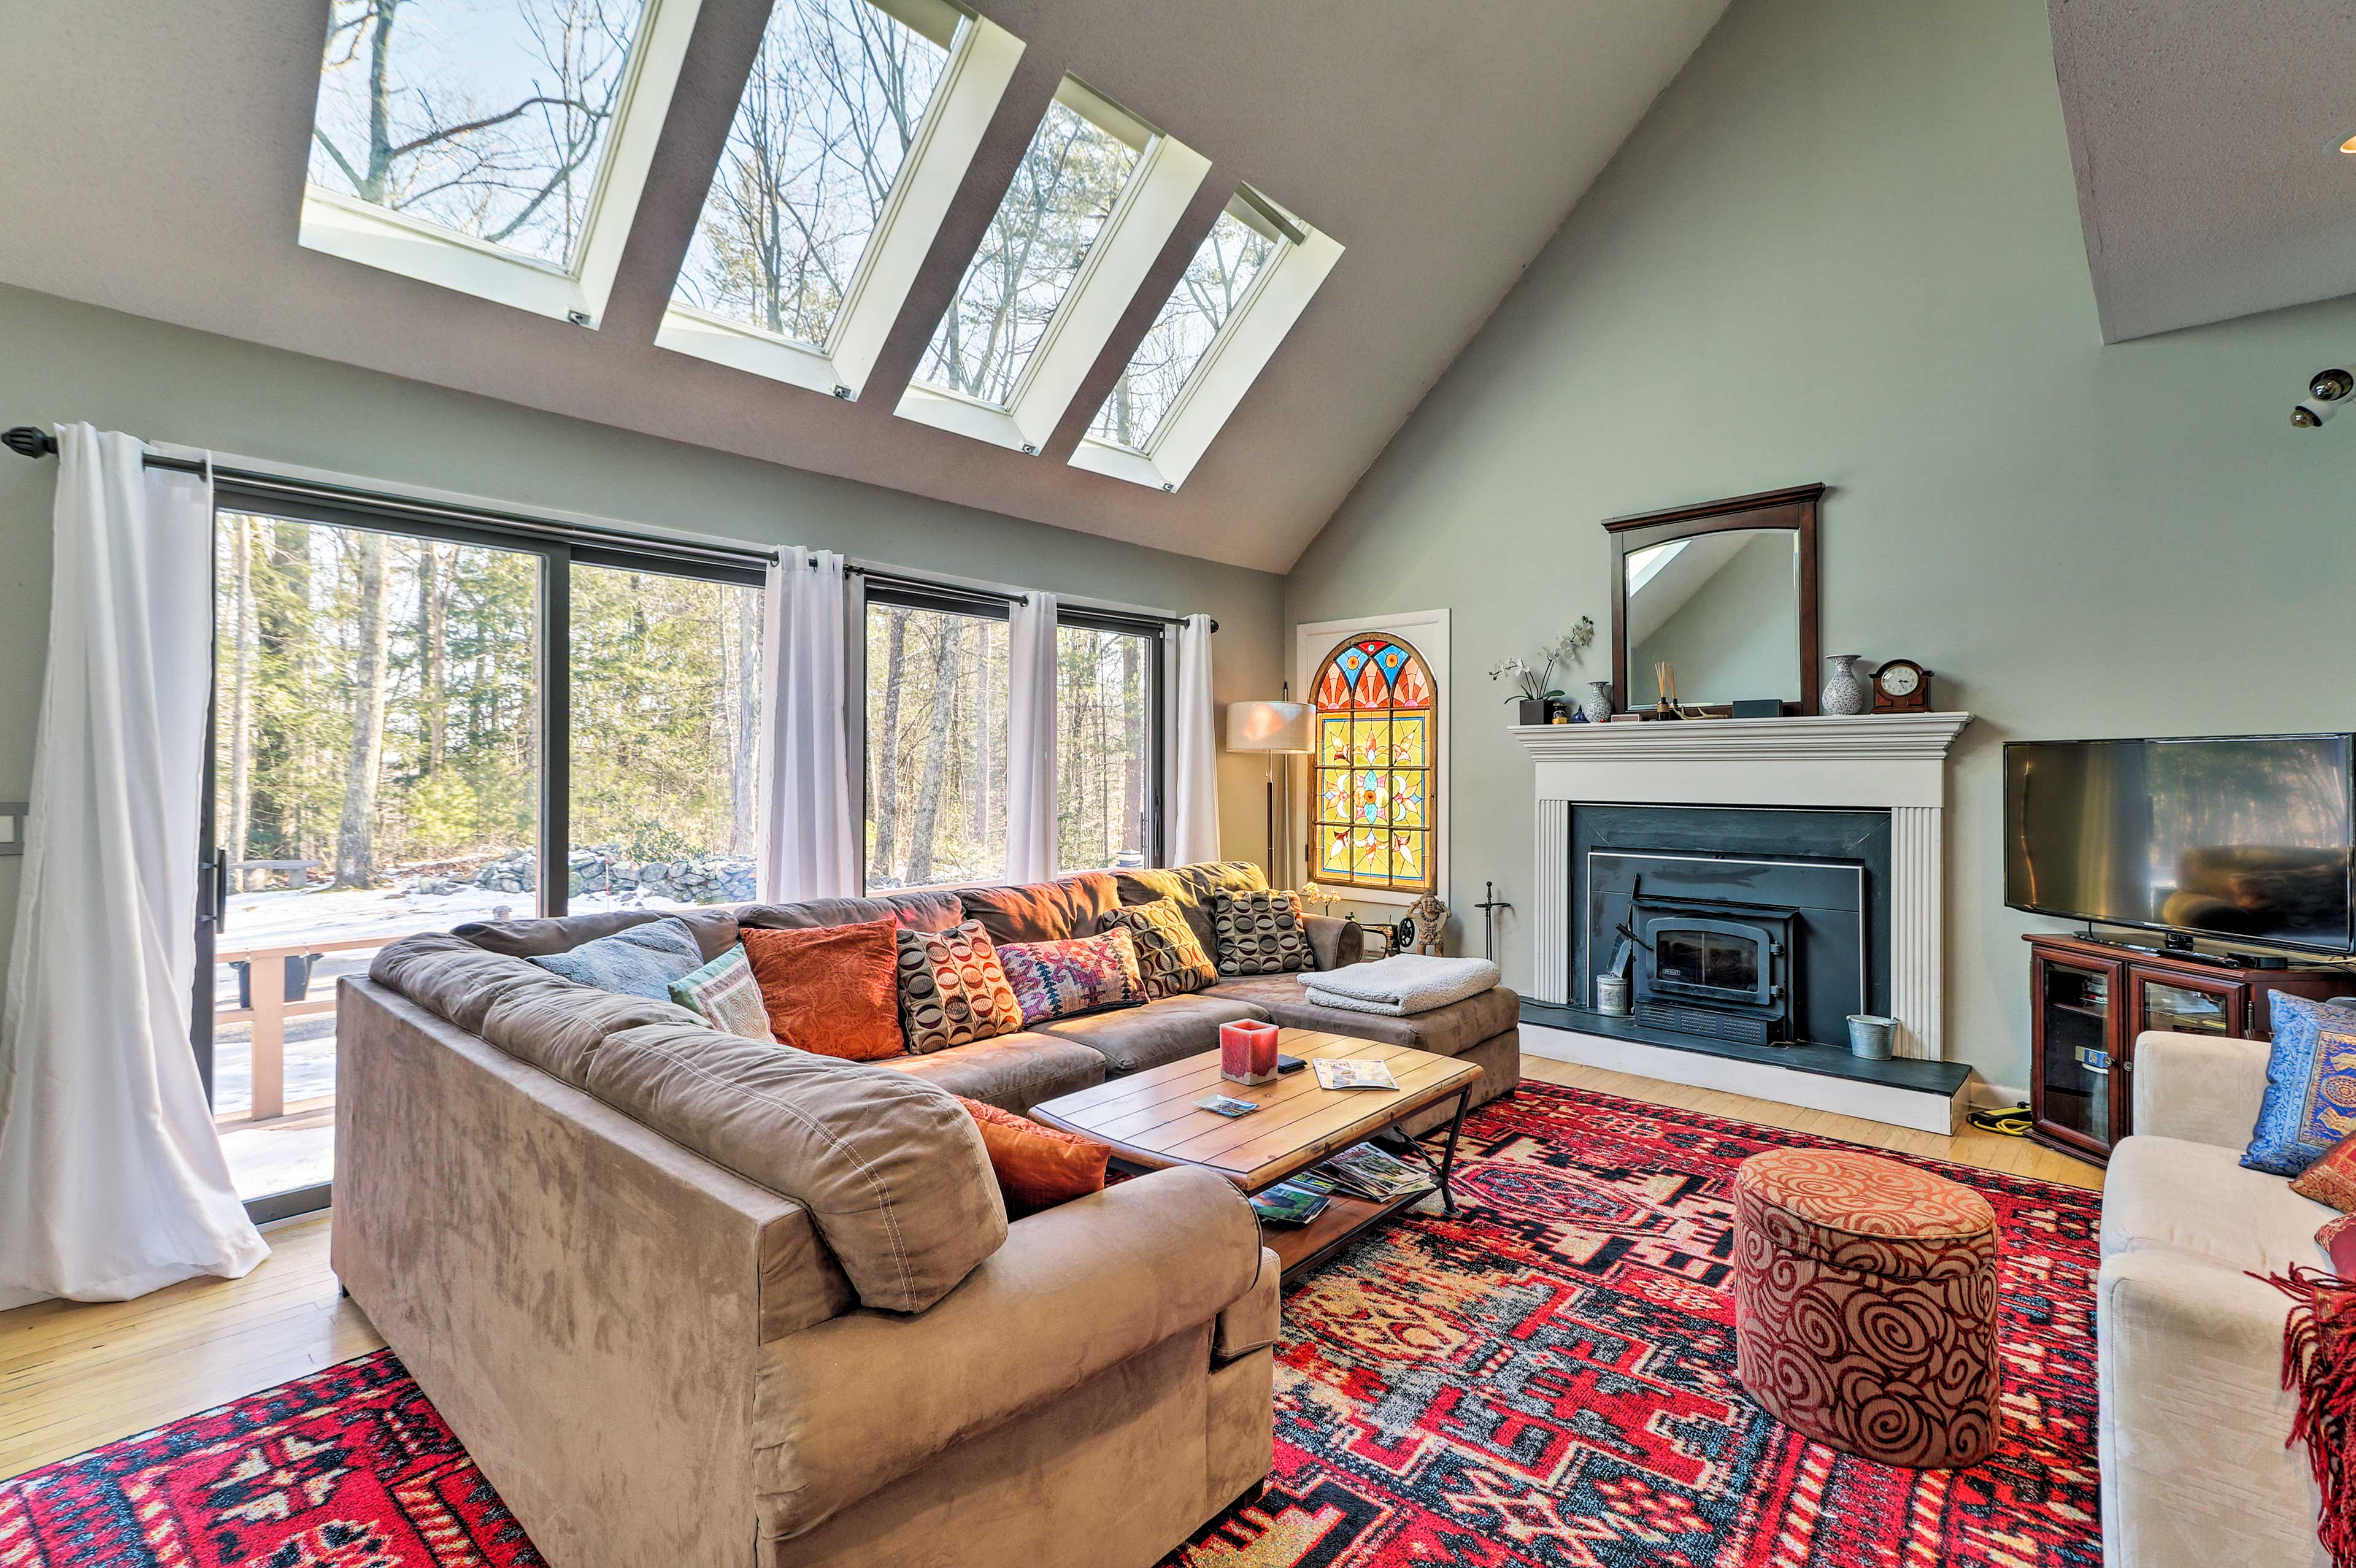 Find a home-away-from-home at this Goshen vacation rental house!